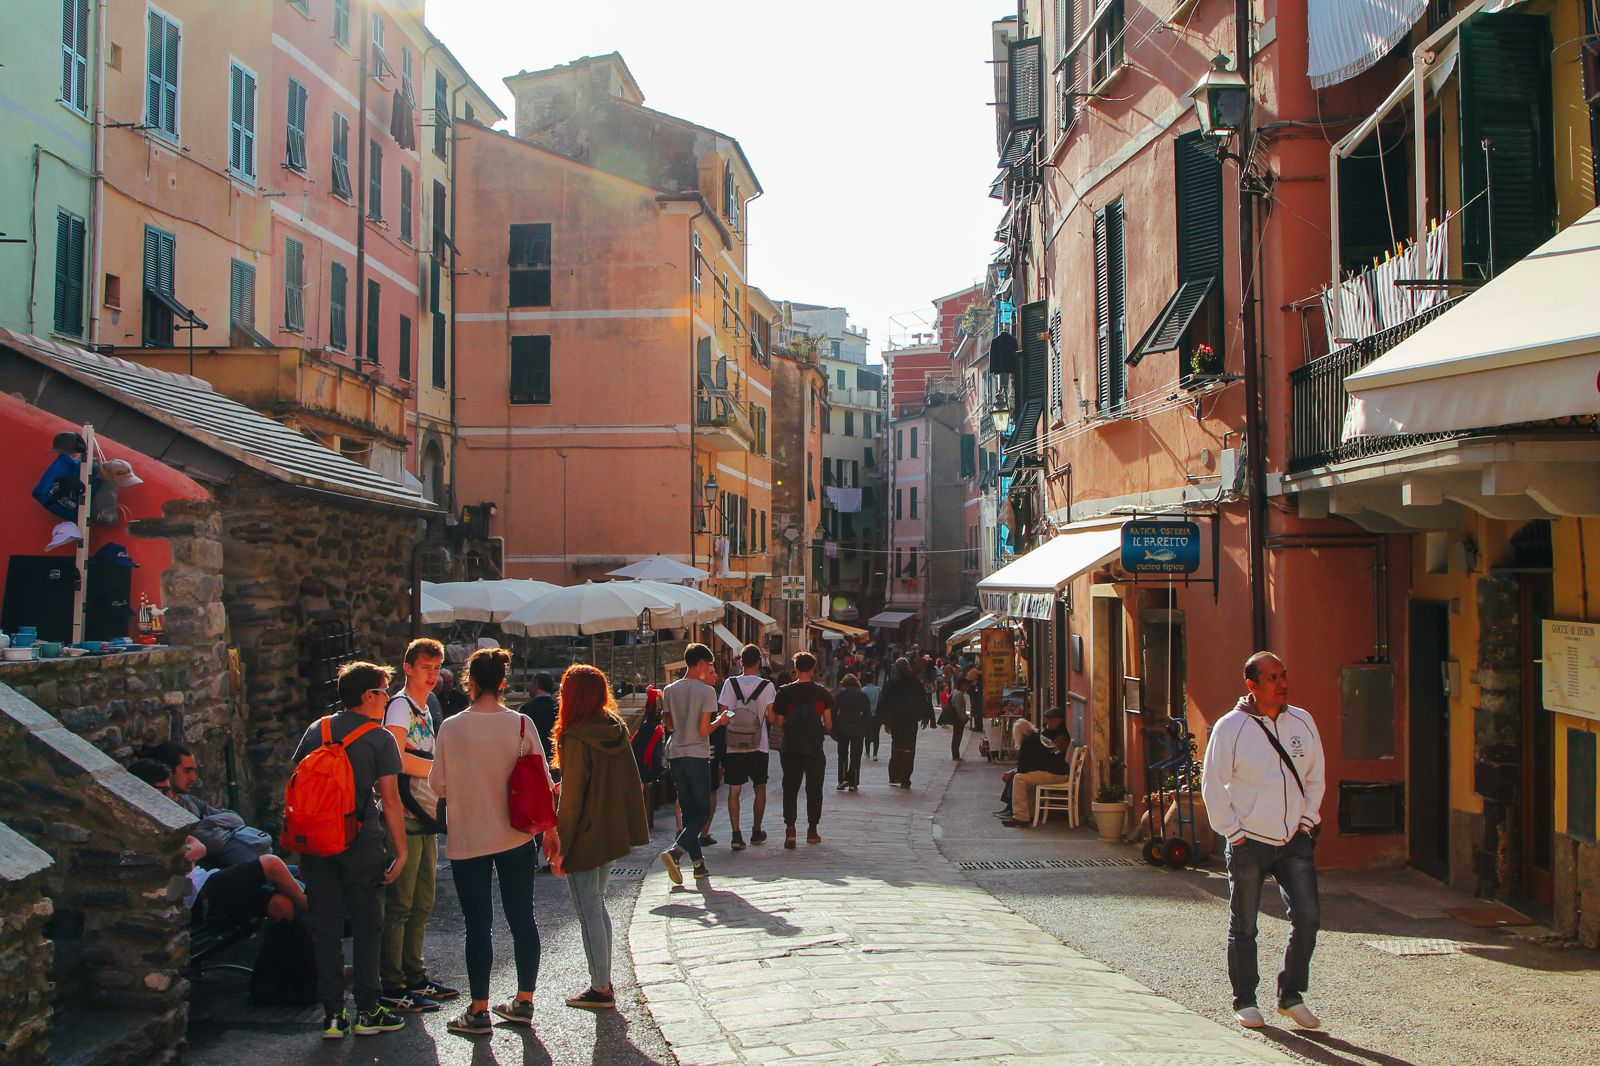 Vernazza in Cinque Terre, Italy - The Photo Diary! [4 of 5] (31)